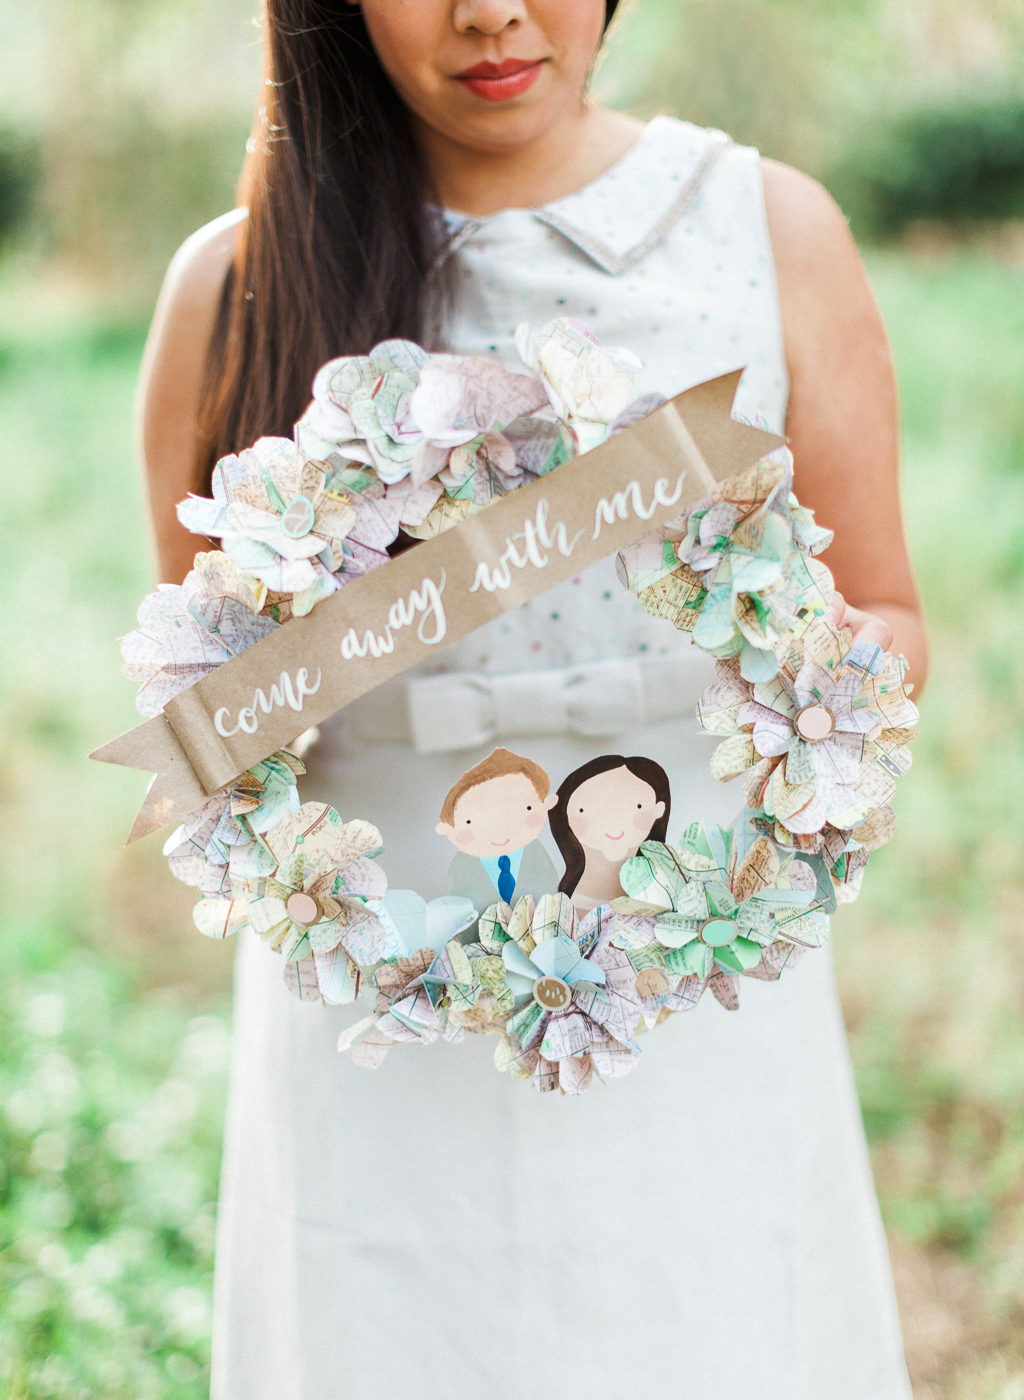 woman holding paper wreath that reads come away with me